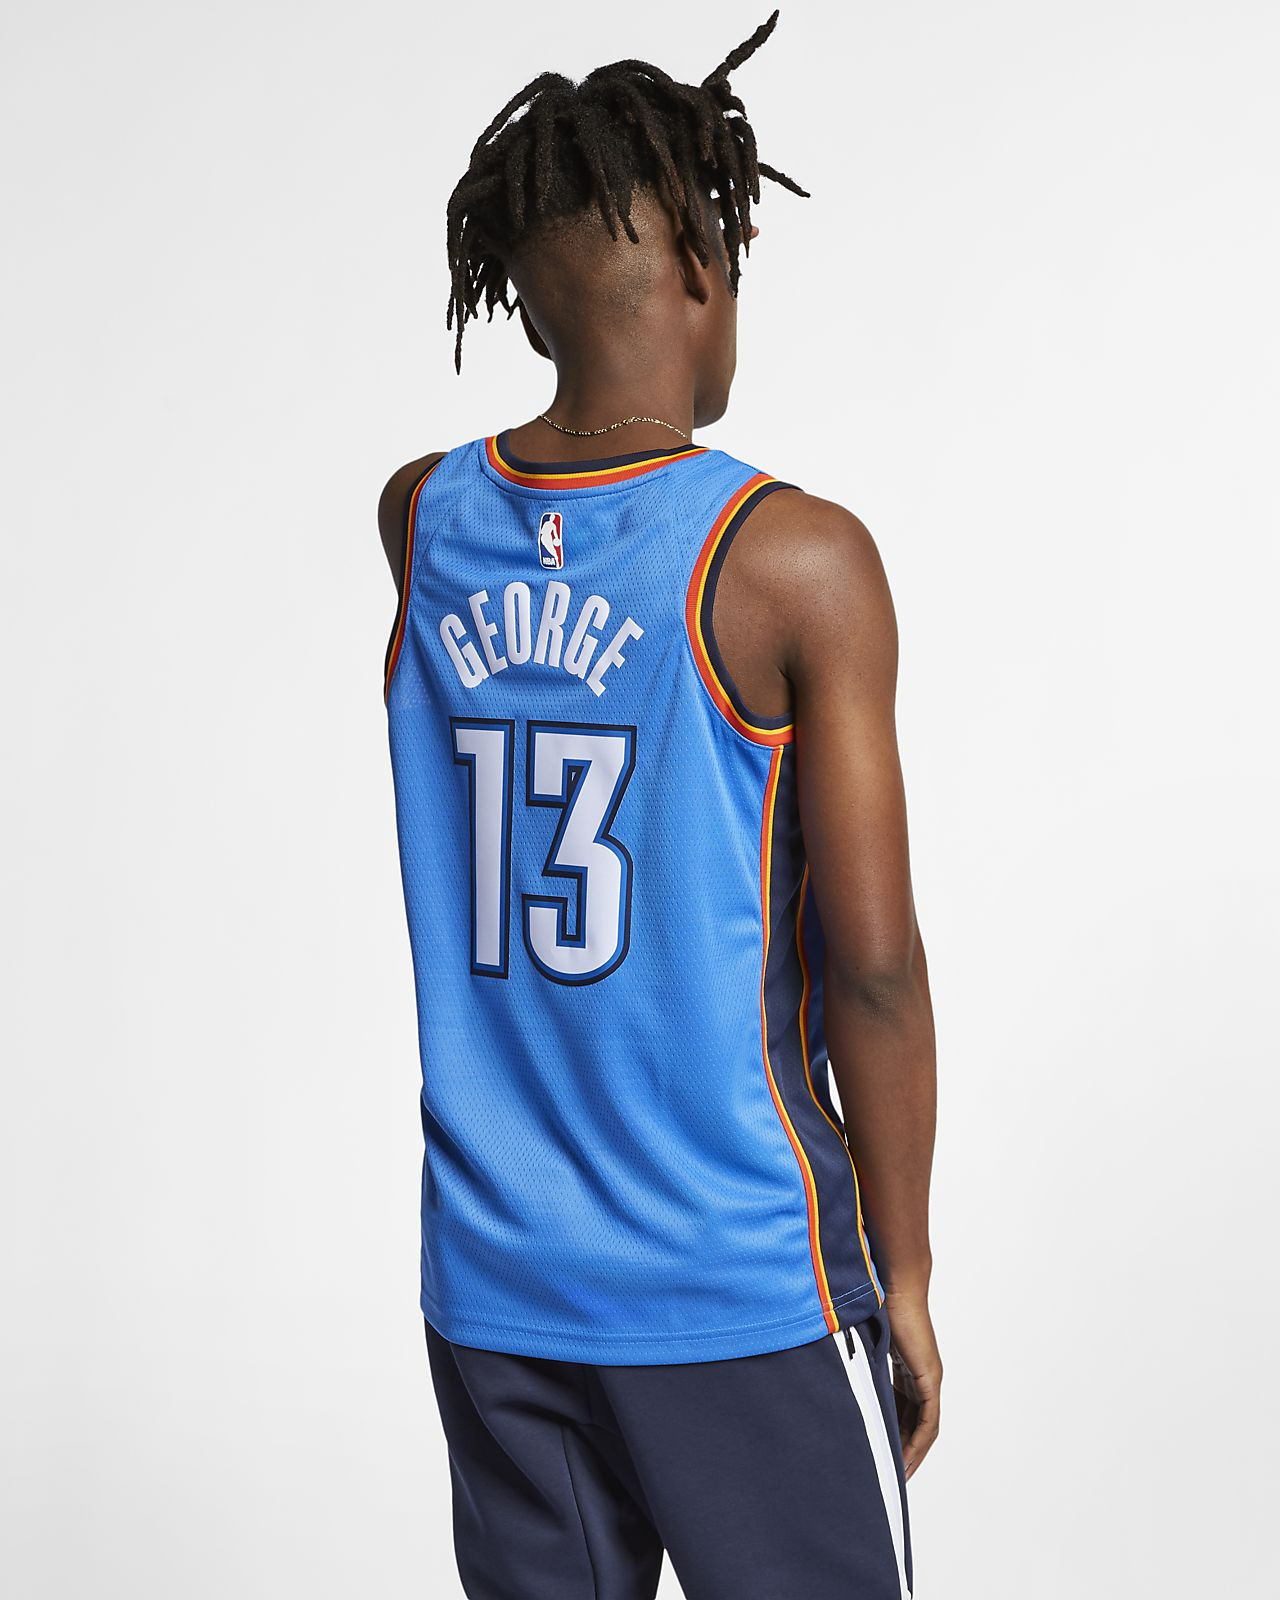 3cb6a0b74a7f Men s Nike NBA Connected Jersey. Paul George Icon Edition Swingman (Oklahoma  City Thunder)